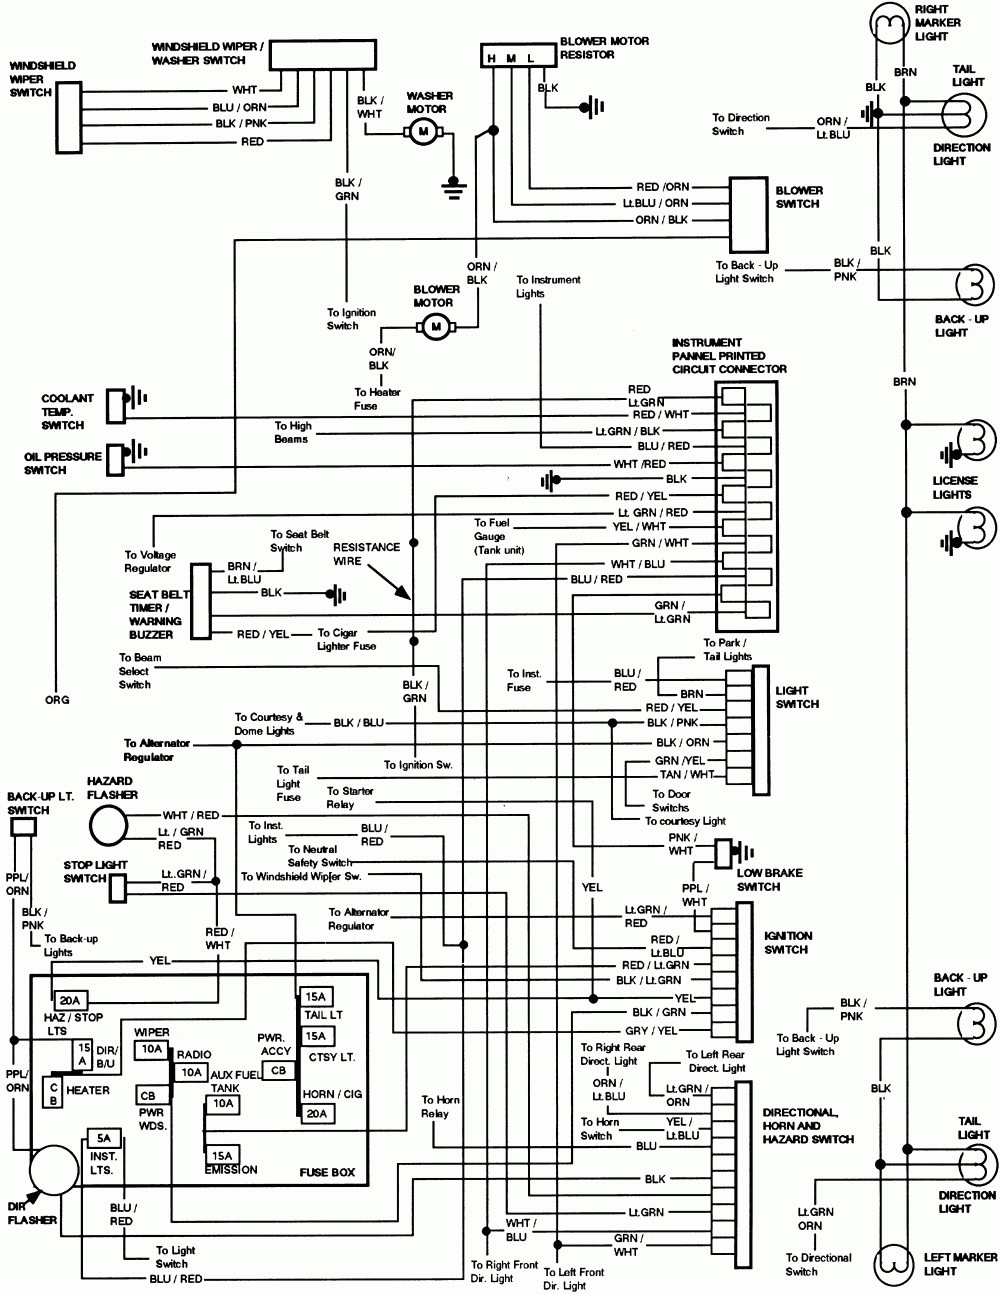 1996 f700 wiring diagram wiring diagram schematics ford e-150 starter  switch wiring 1996 ford